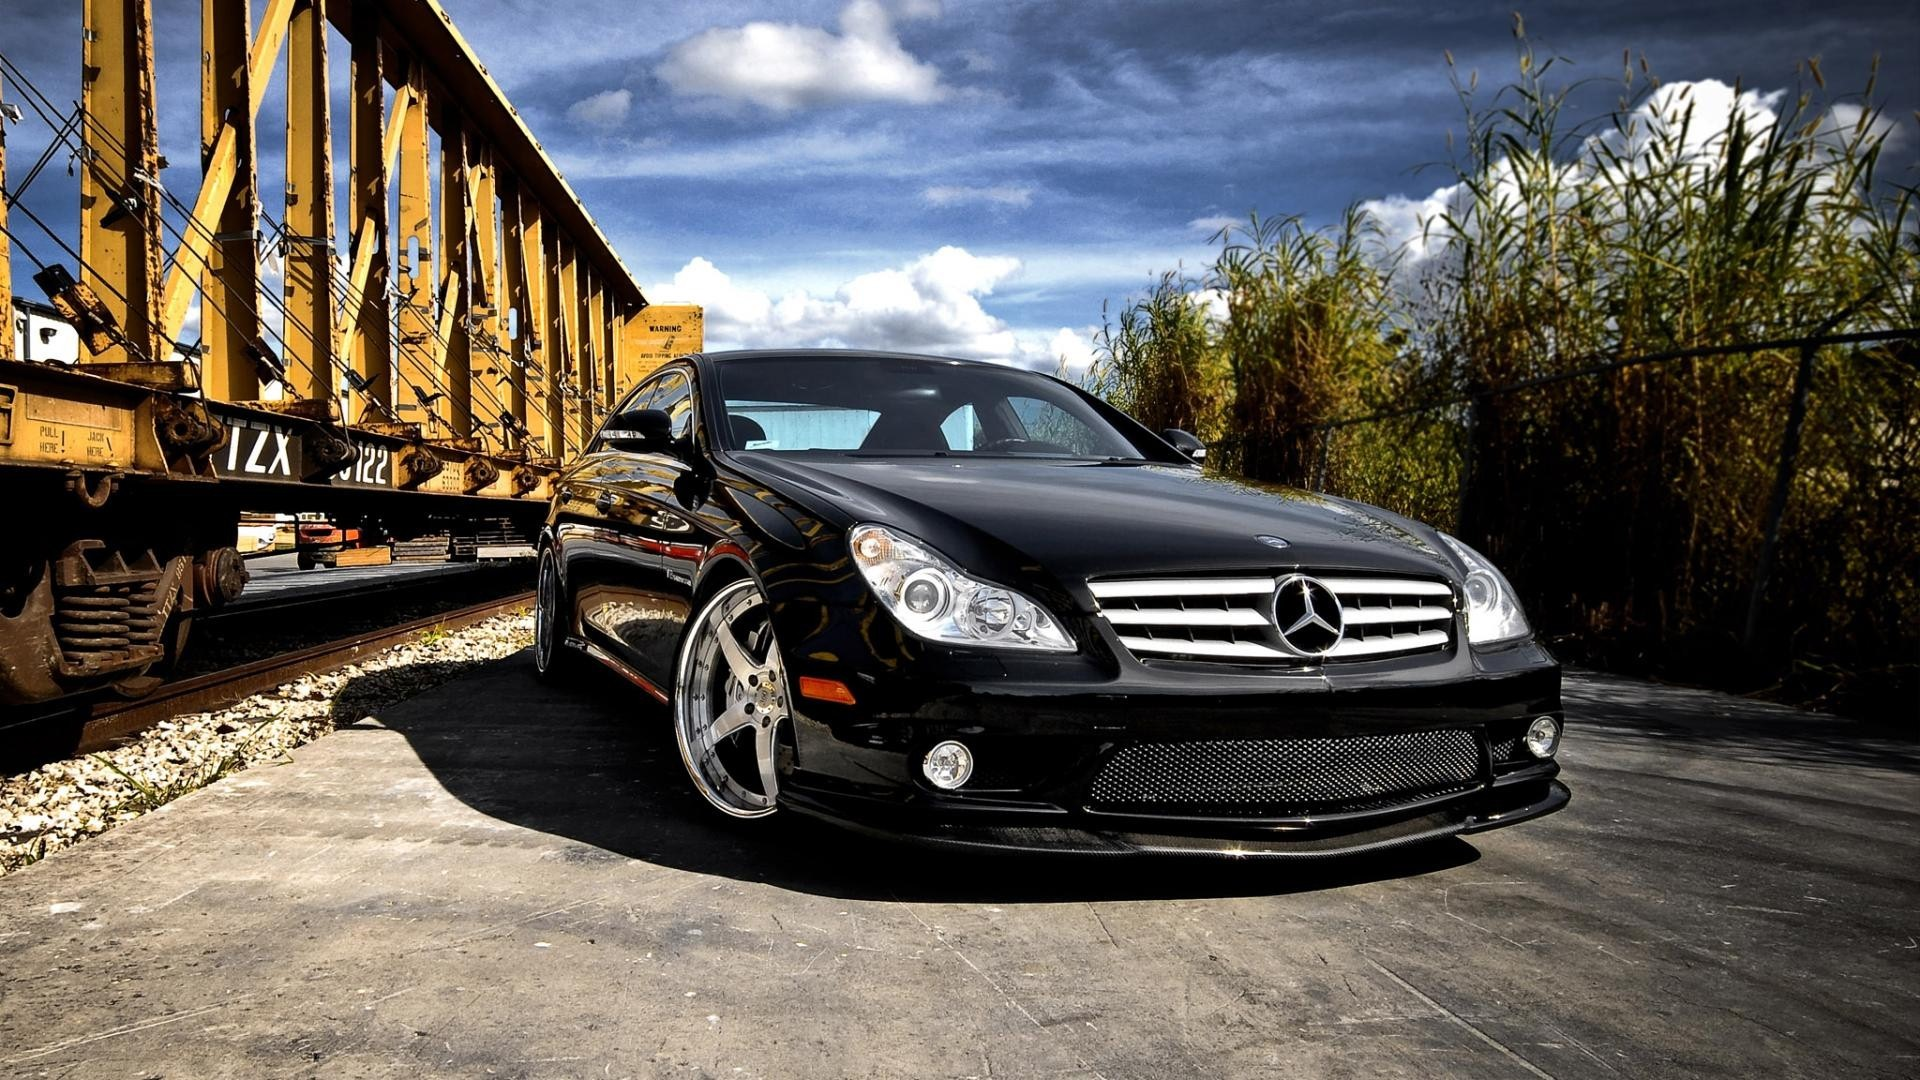 Black Mercedes Benz CLS HD Car Wallpapers HD Wallpapers 1920x1080